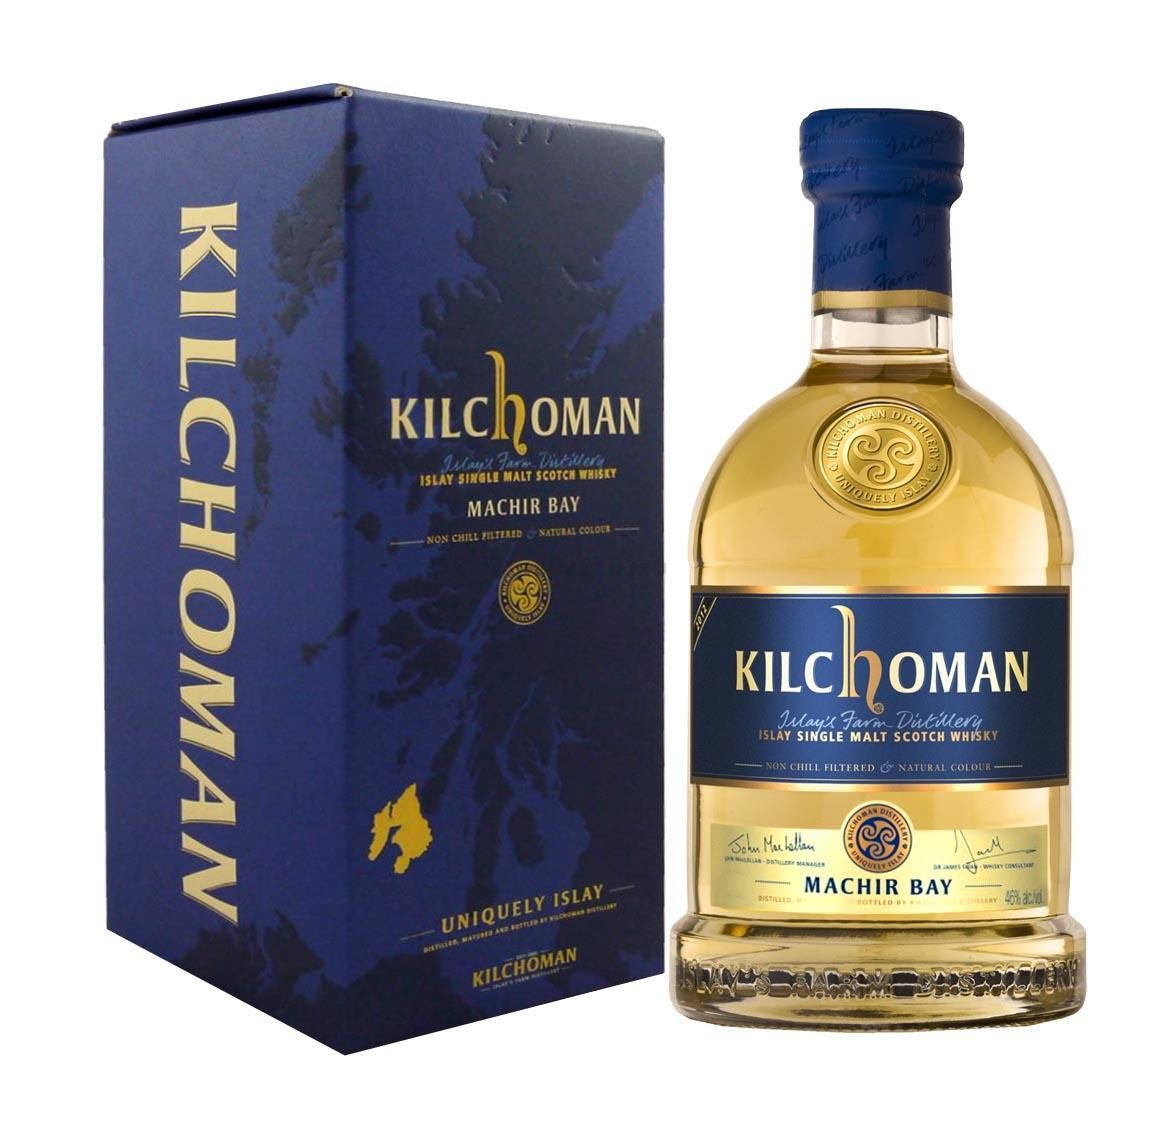 Kilchoman Machir Bay 70cl 46% Islay Single Malt Whisky